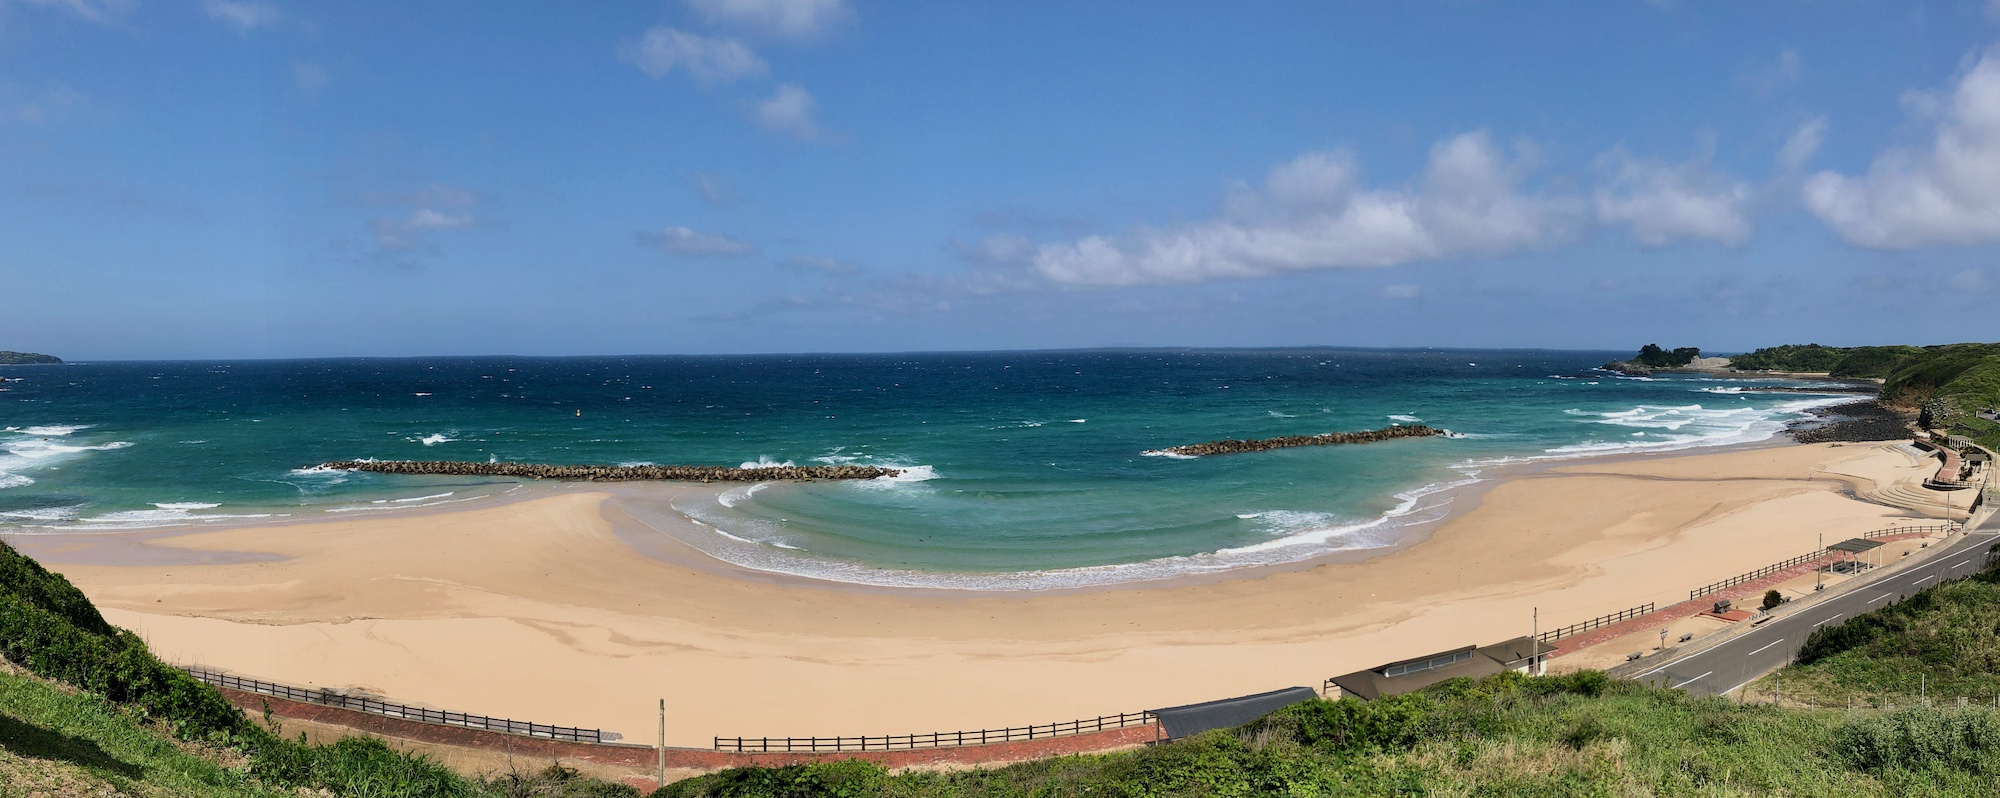 Panorama of wide sandy beach, blue sky, and blue-green waves crashing on the beach